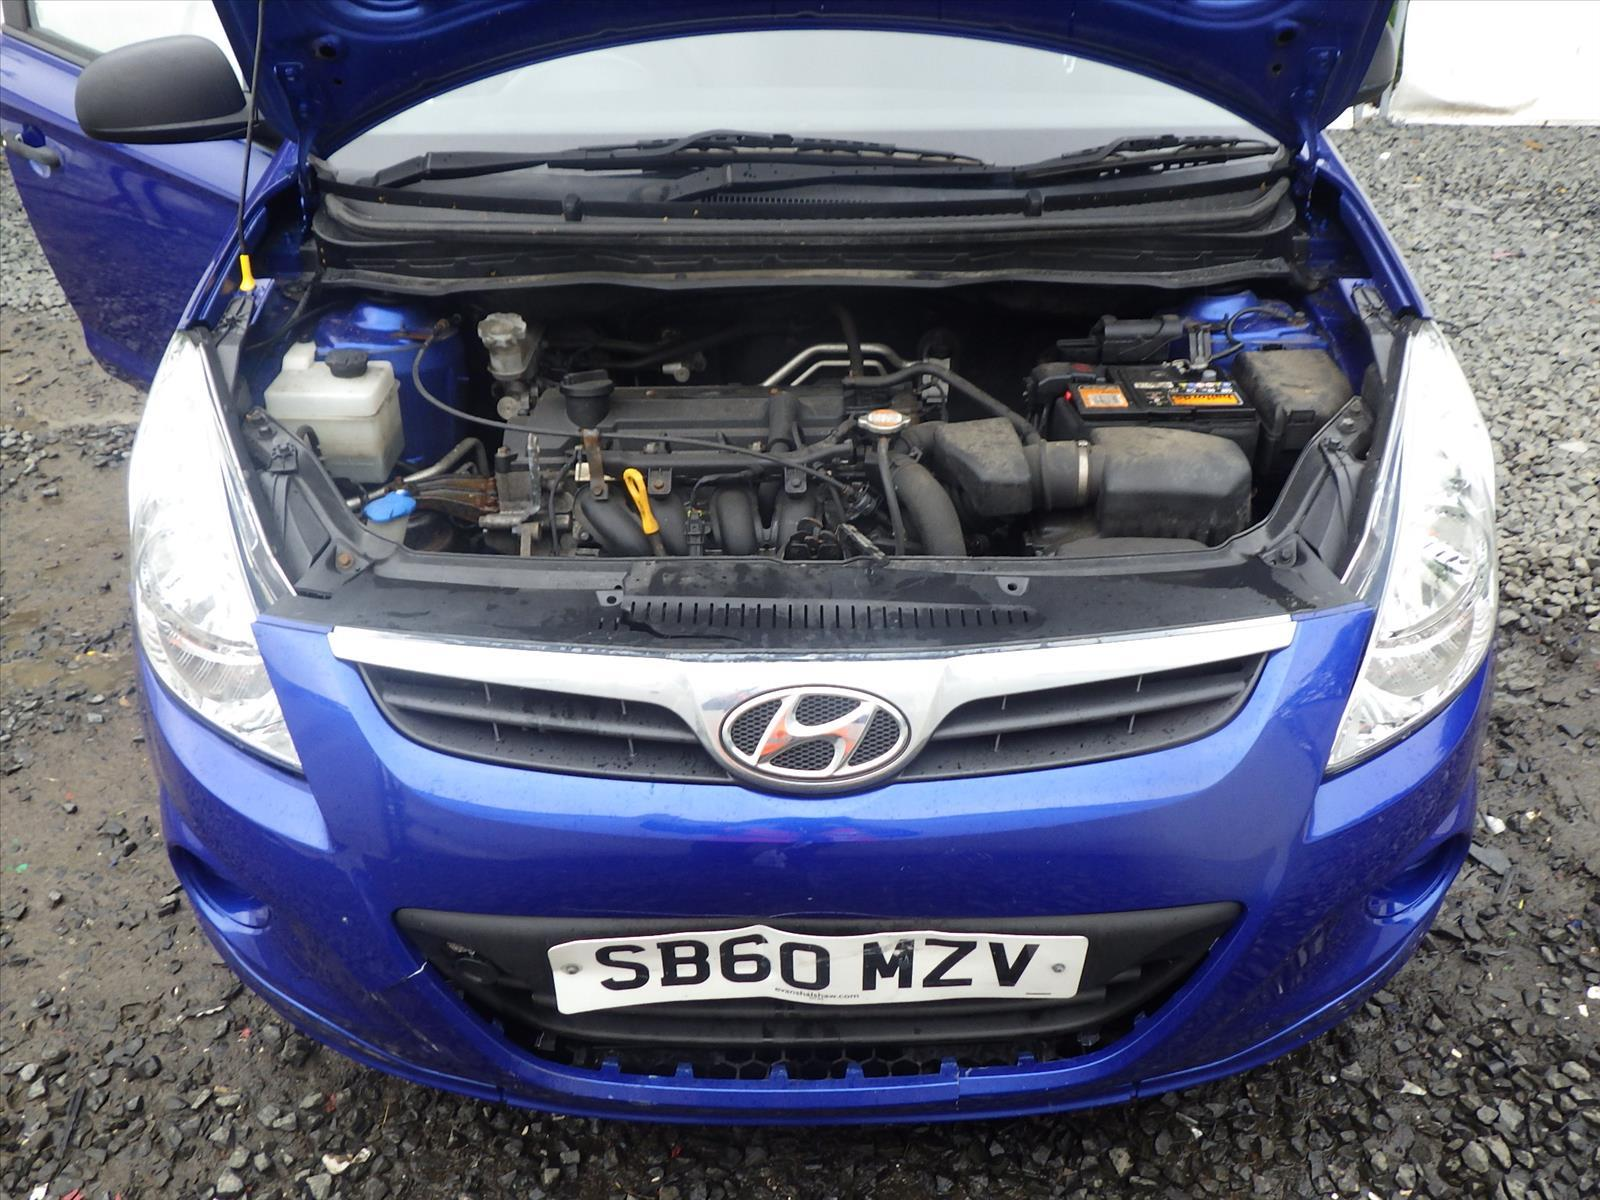 Hyundai i20 2009 To 2012 Engine (Petrol / Manual) for sale